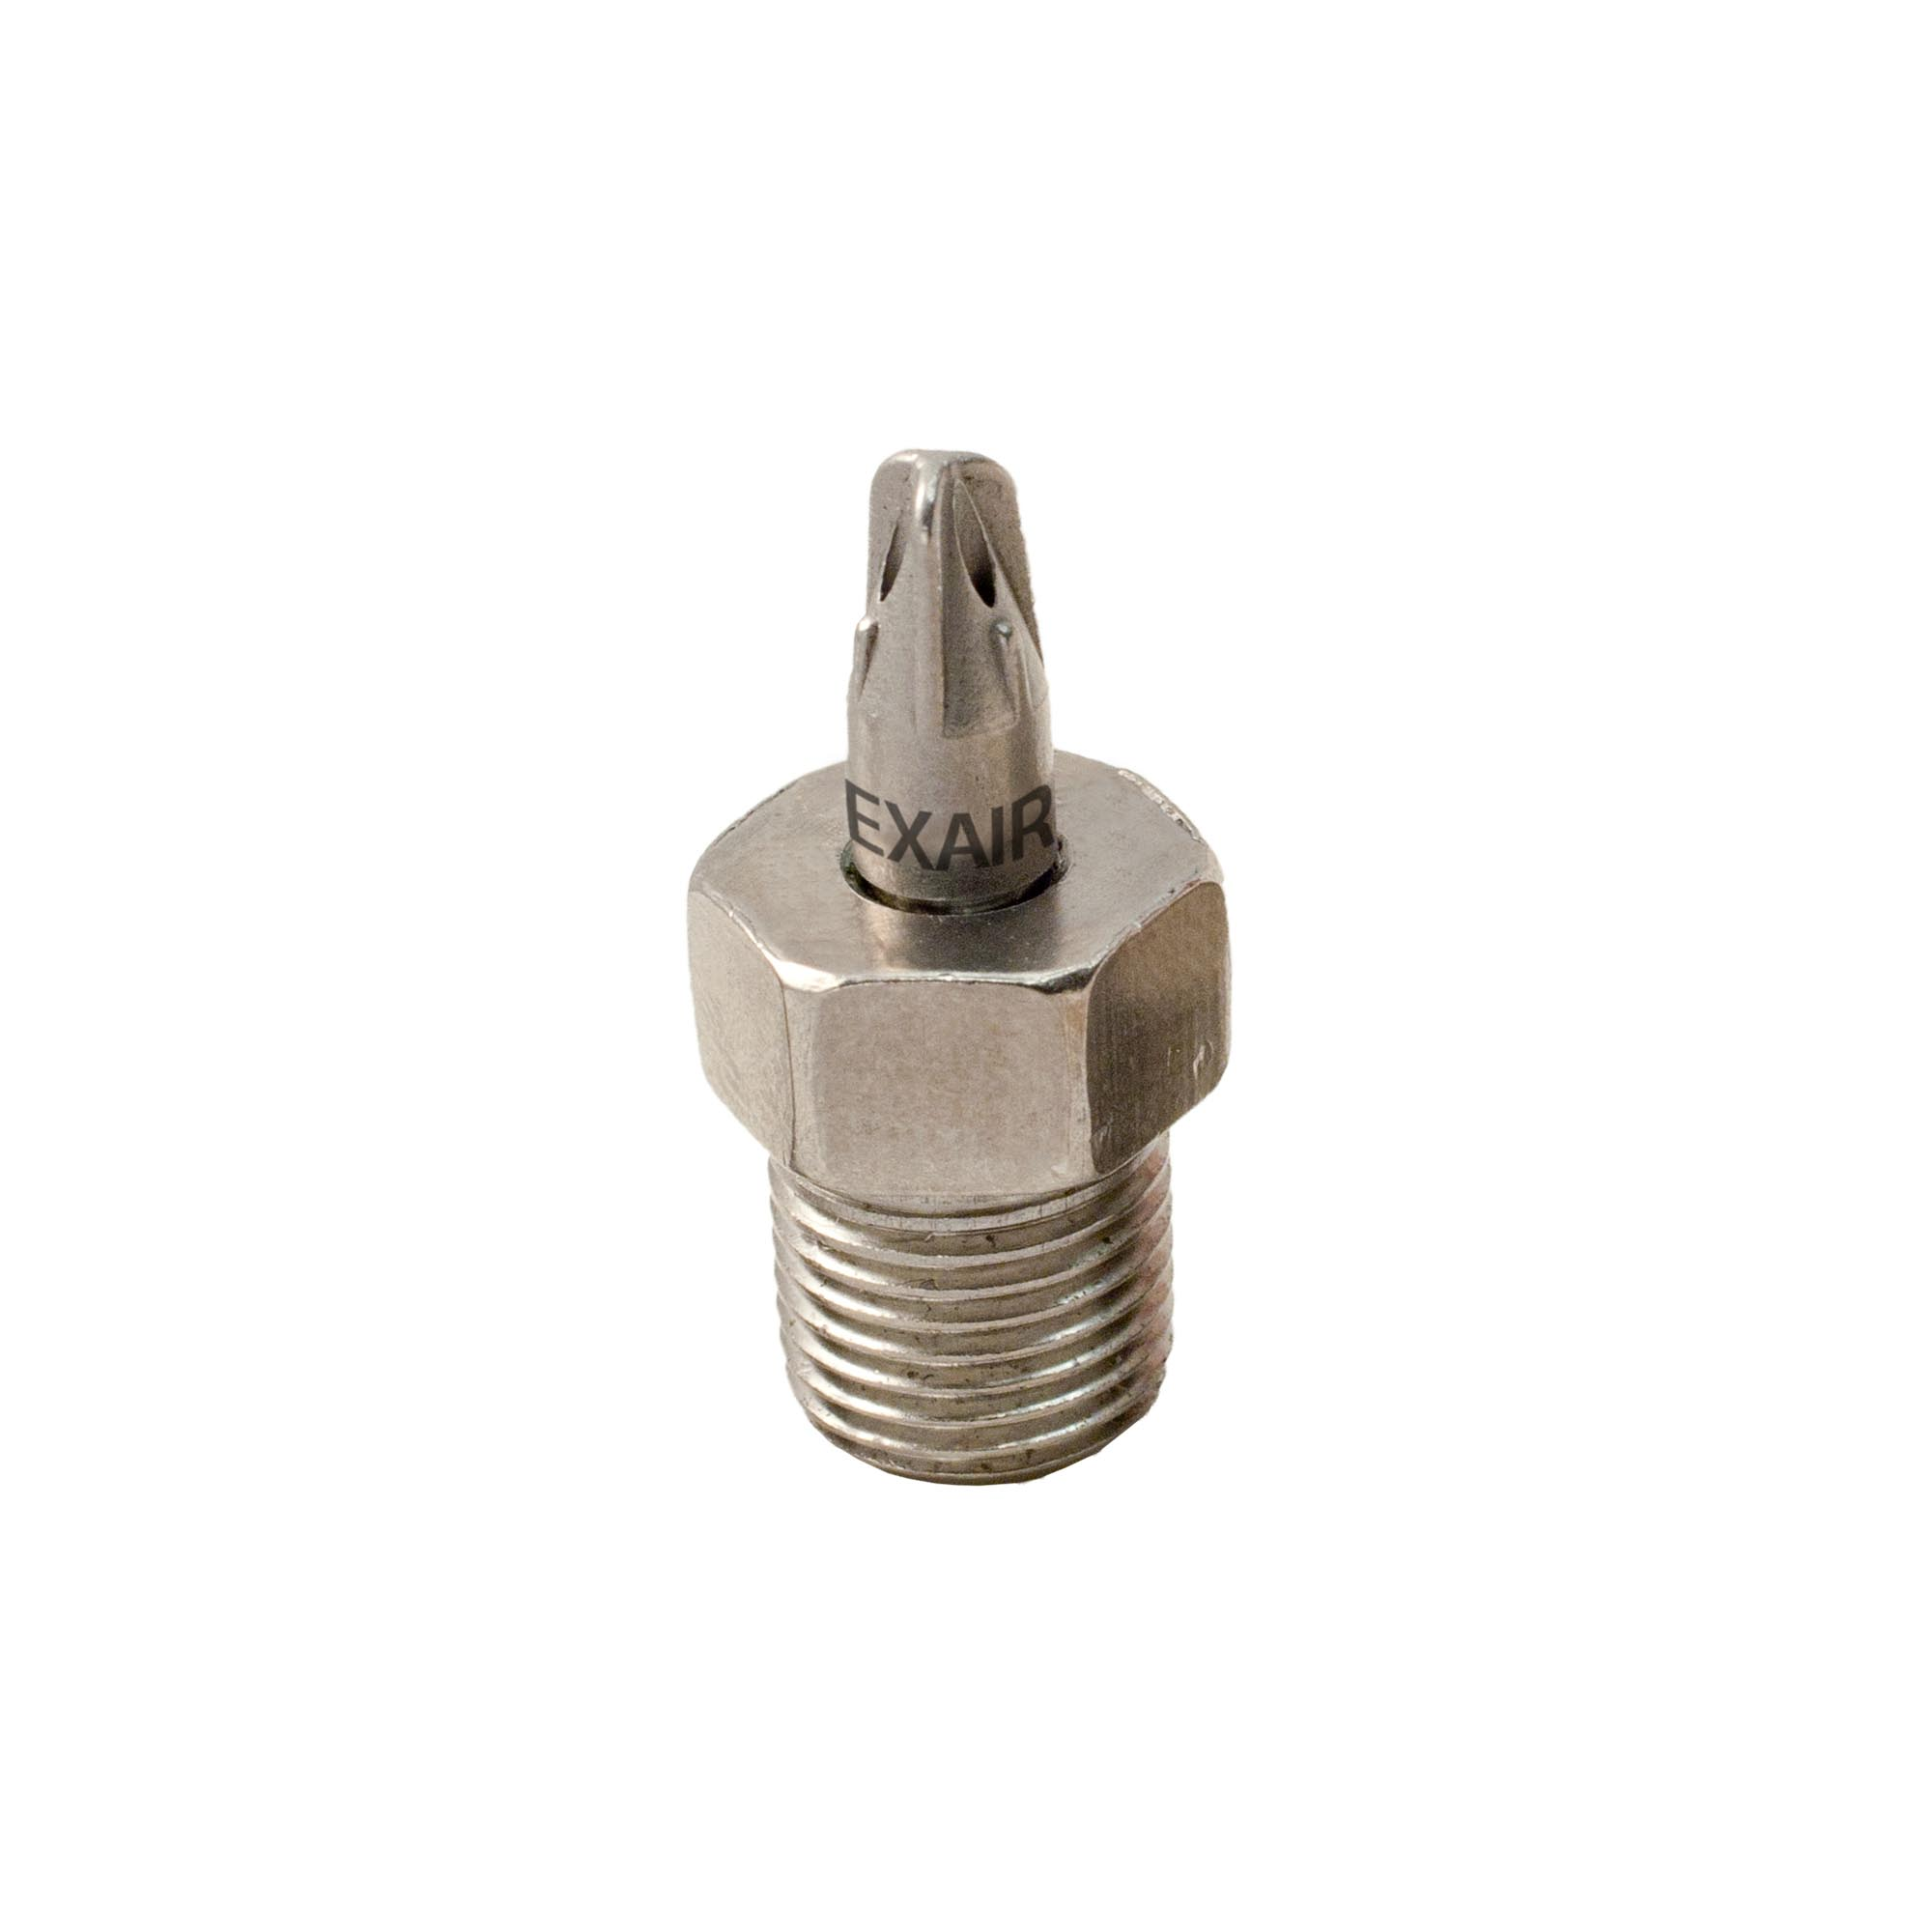 NPT version of Stainless Steel Pico Super Air Nozzle